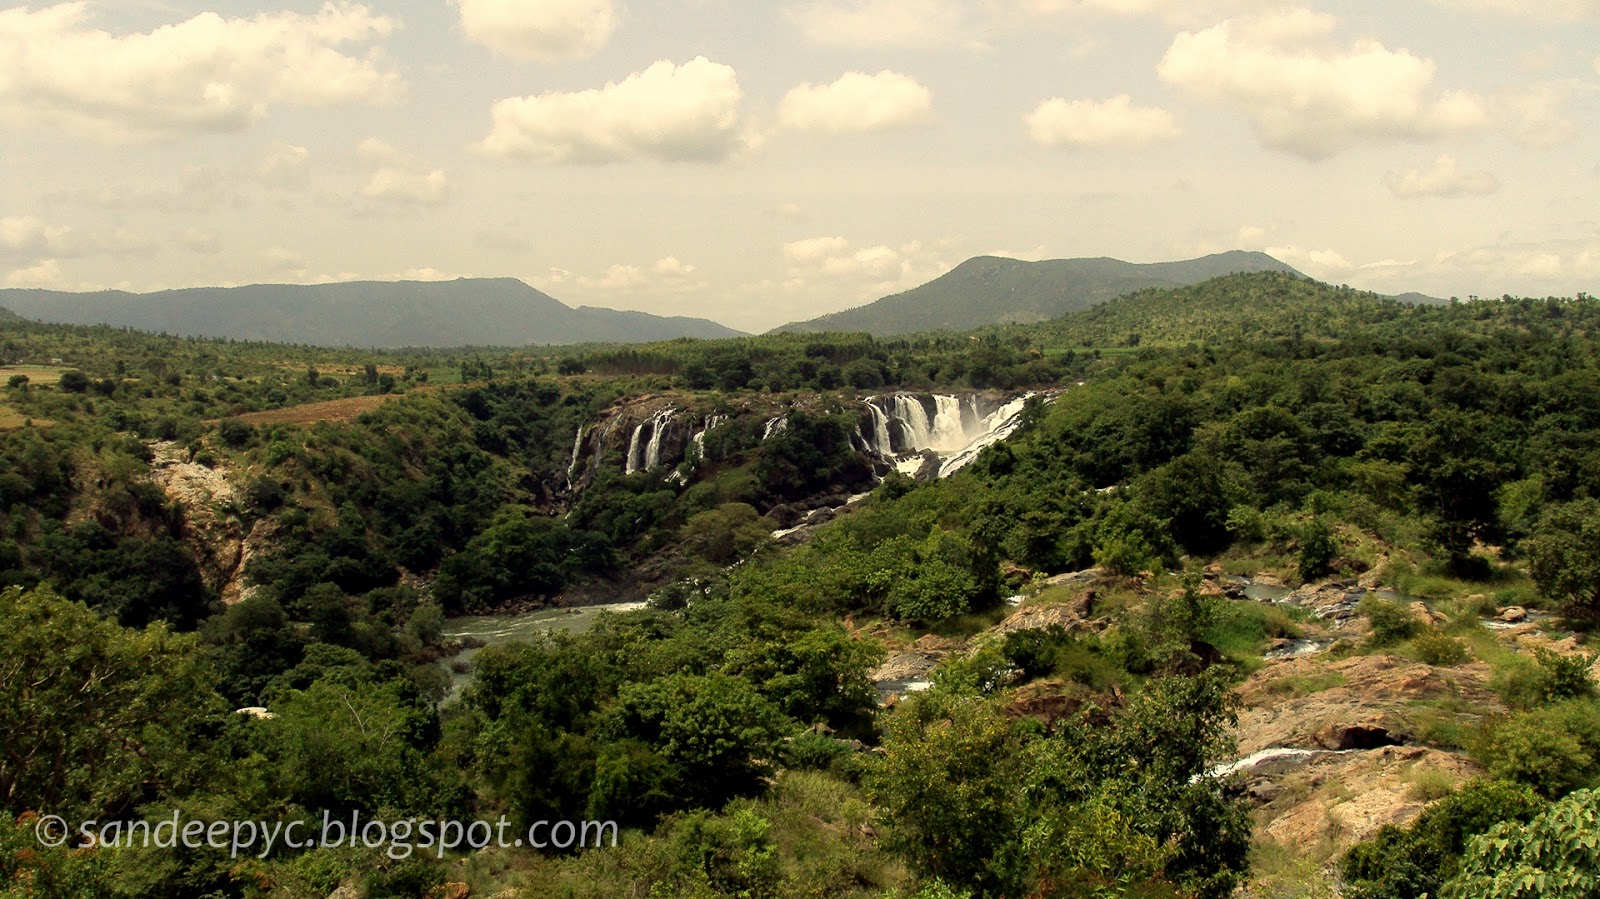 Distant view of Bharachukki falls